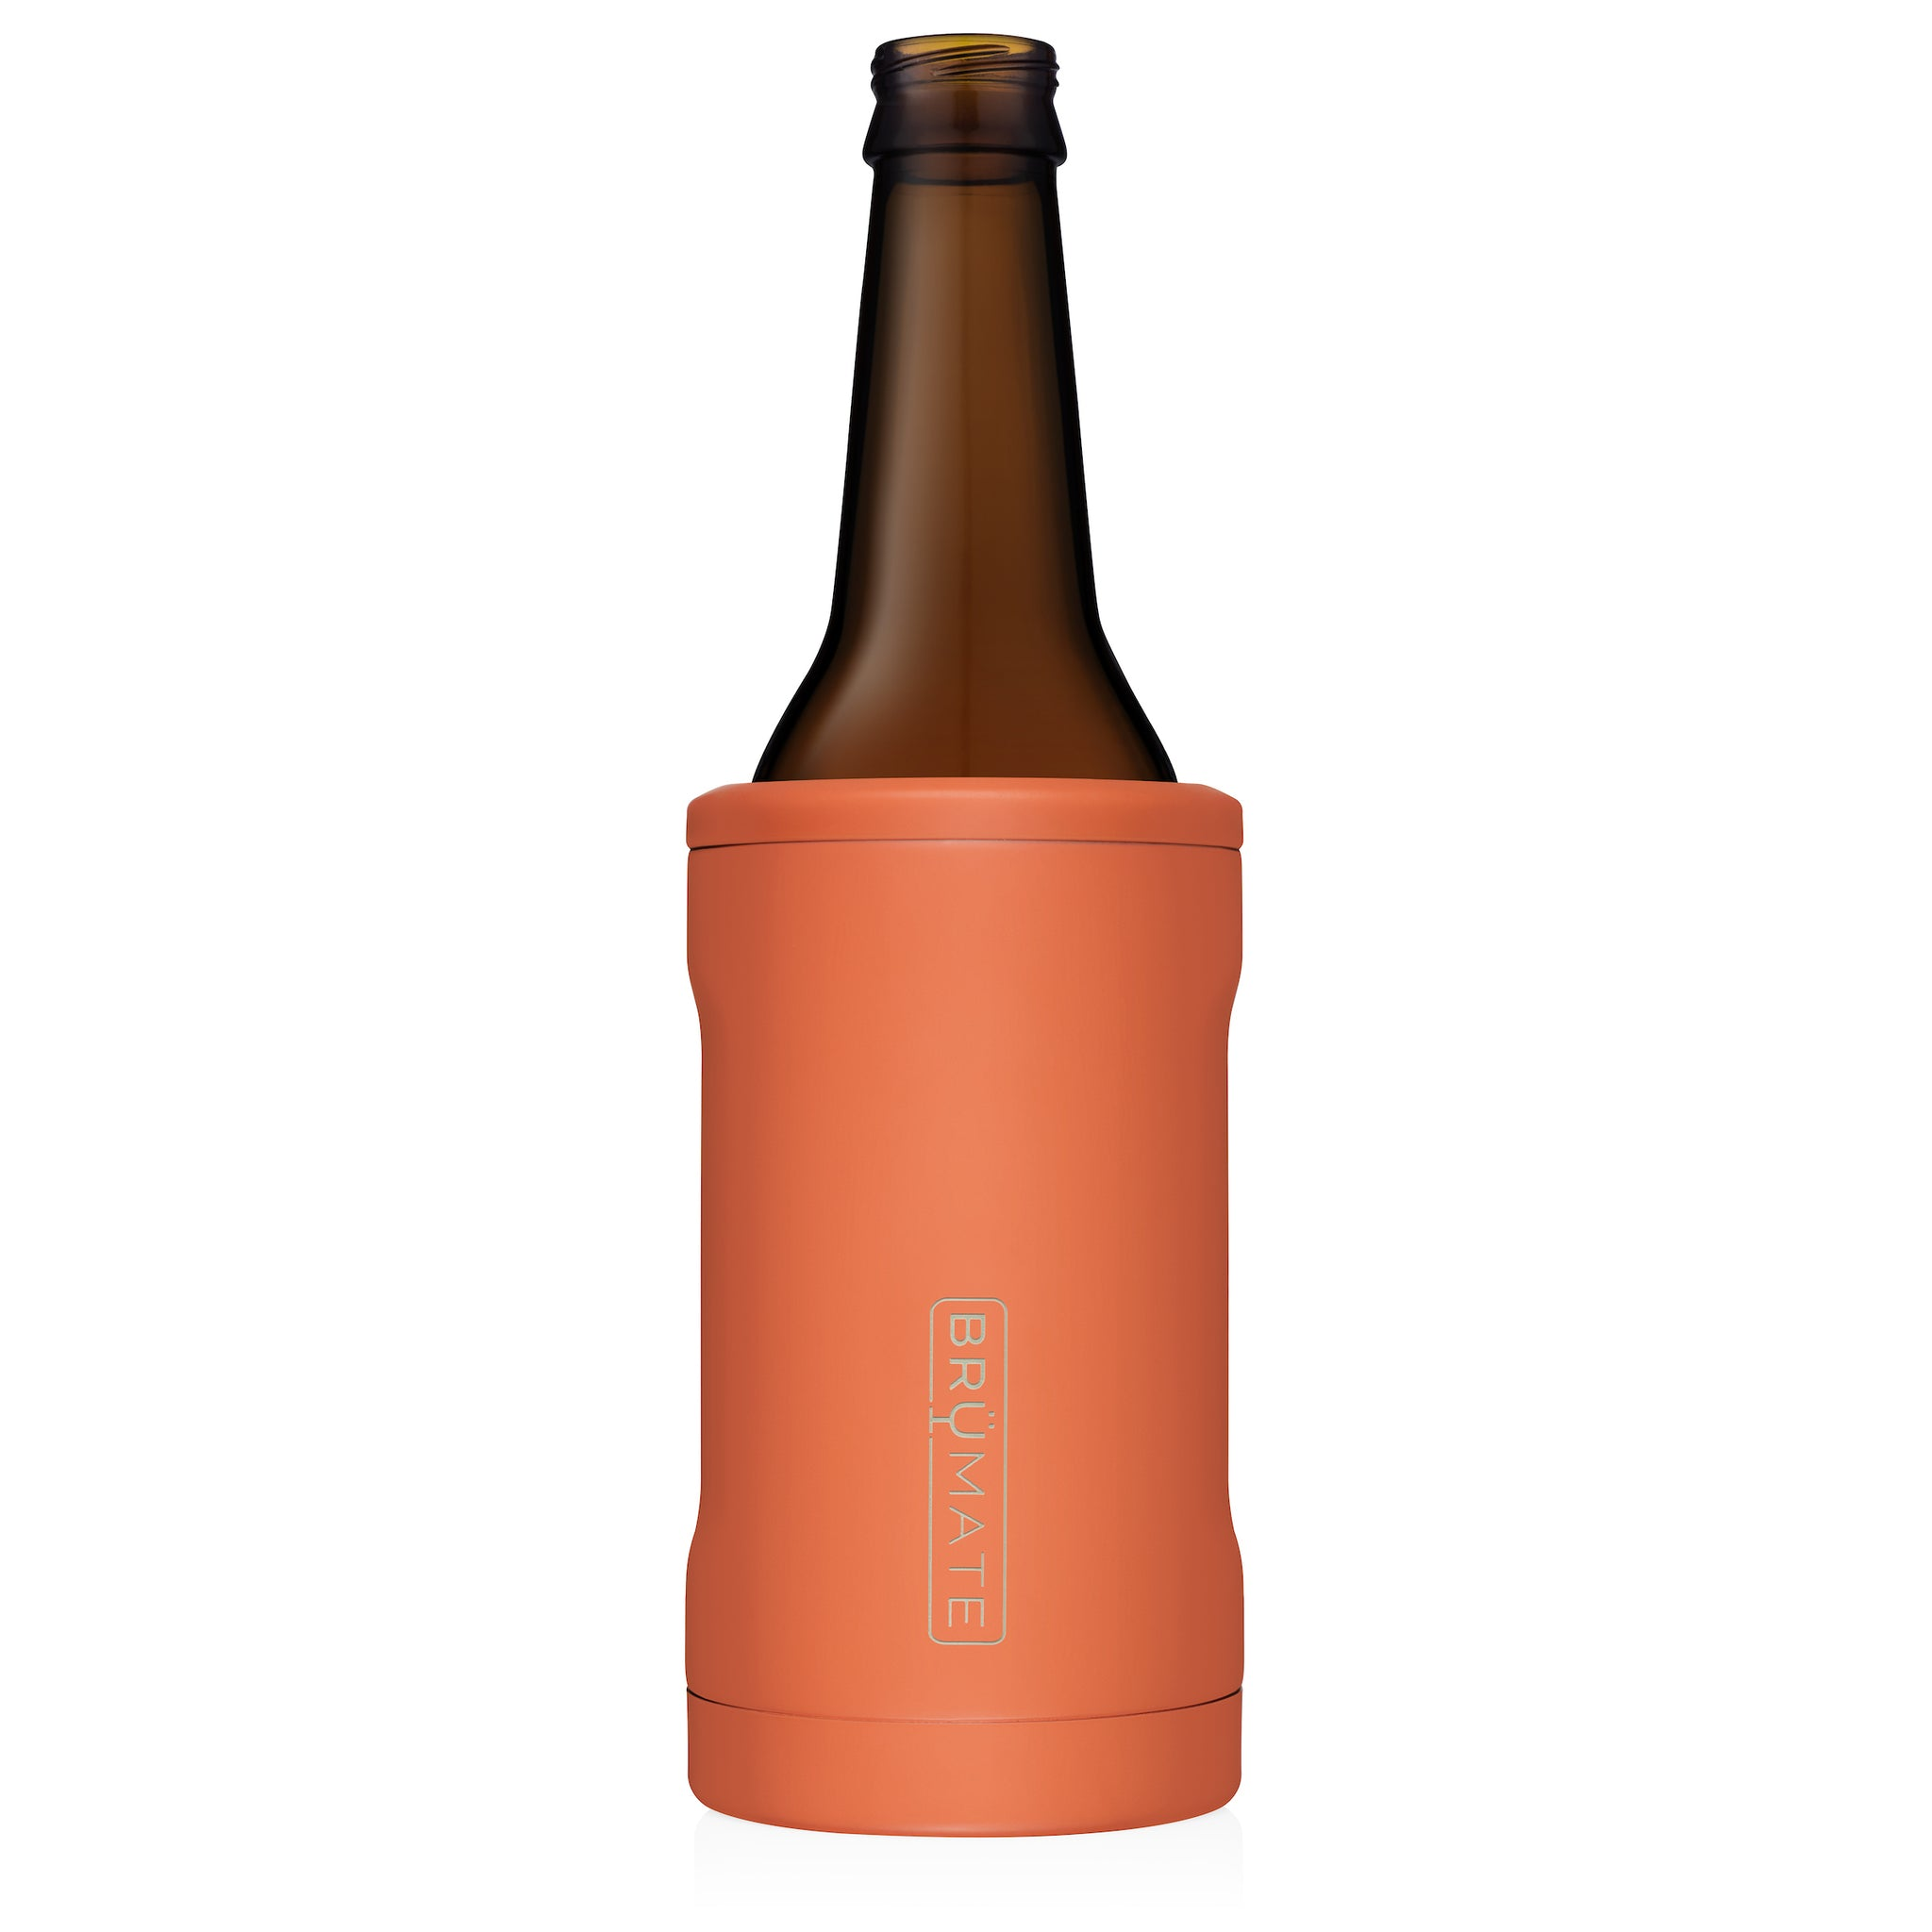 Hopsulator BOTT'L | Matte Clay (12oz bottles)